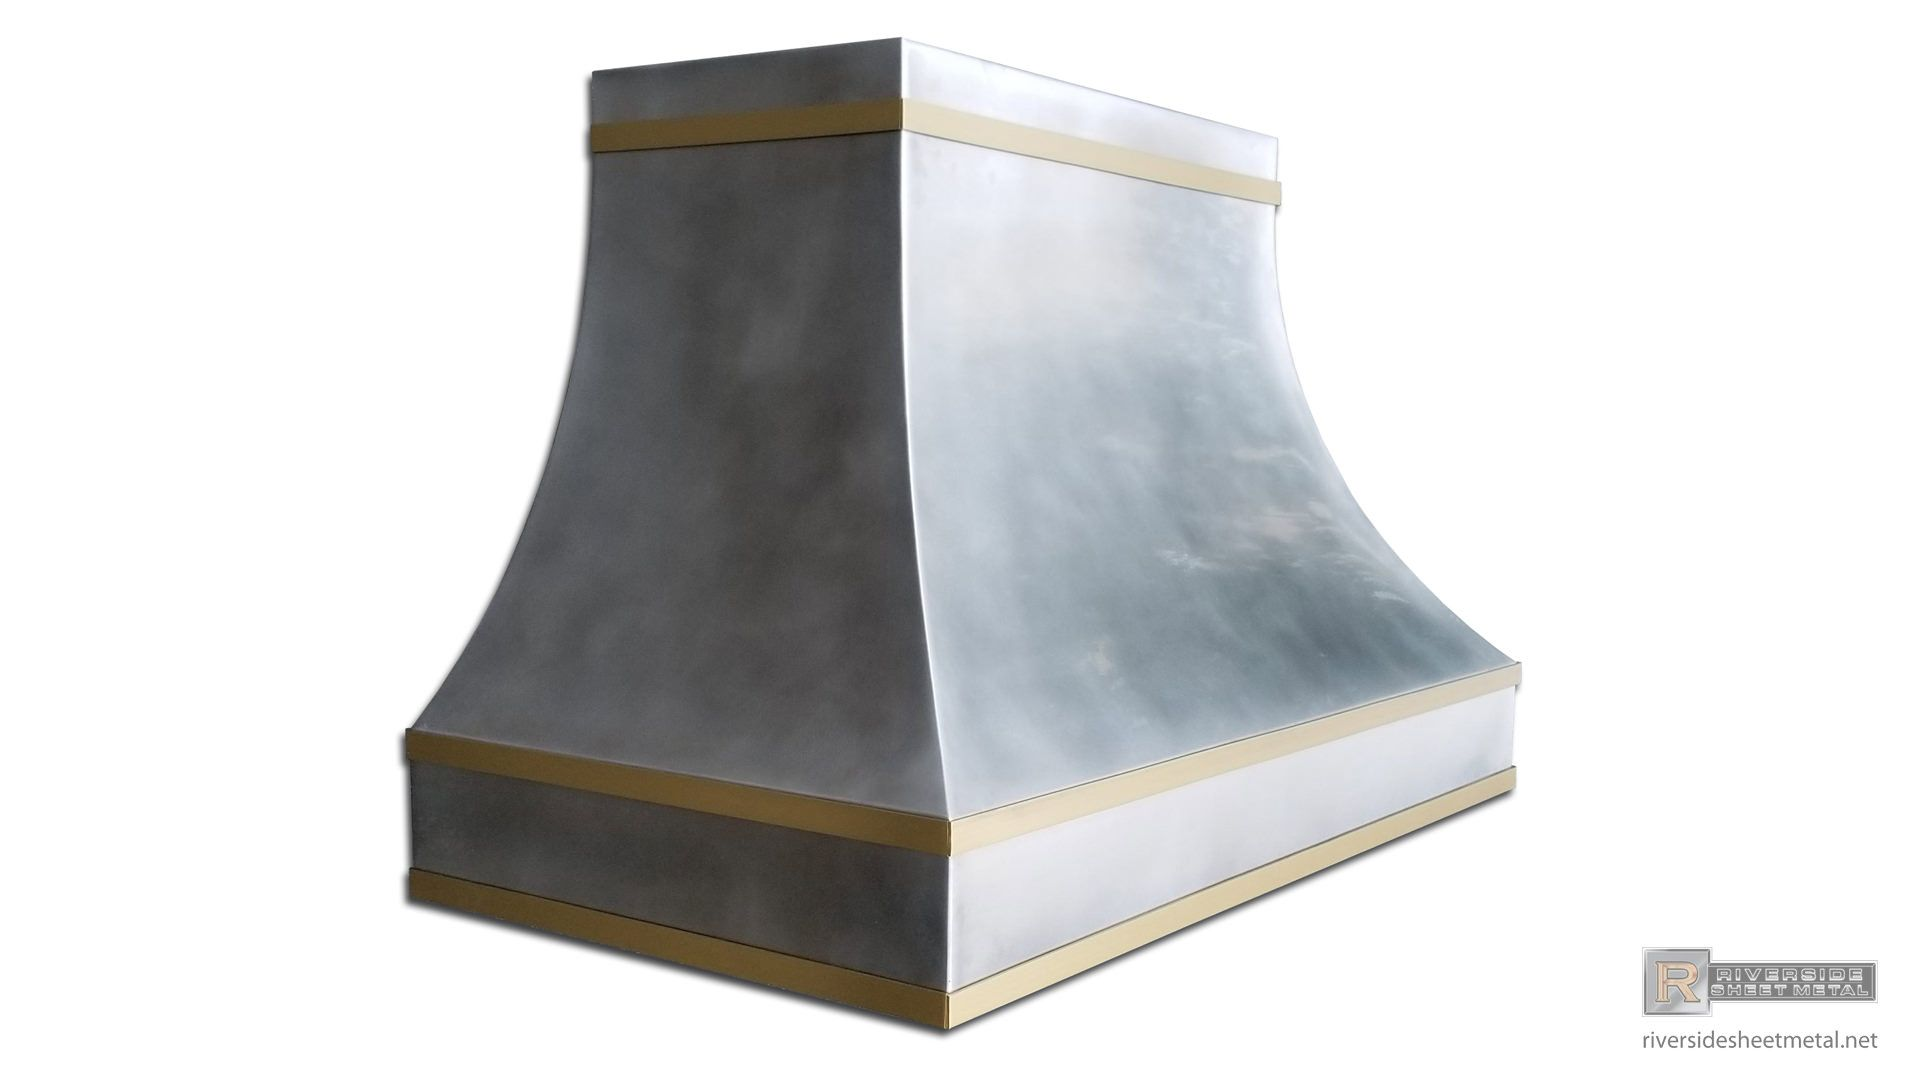 We Ship To All Us States Riverside Sheet Metal Specializes In The